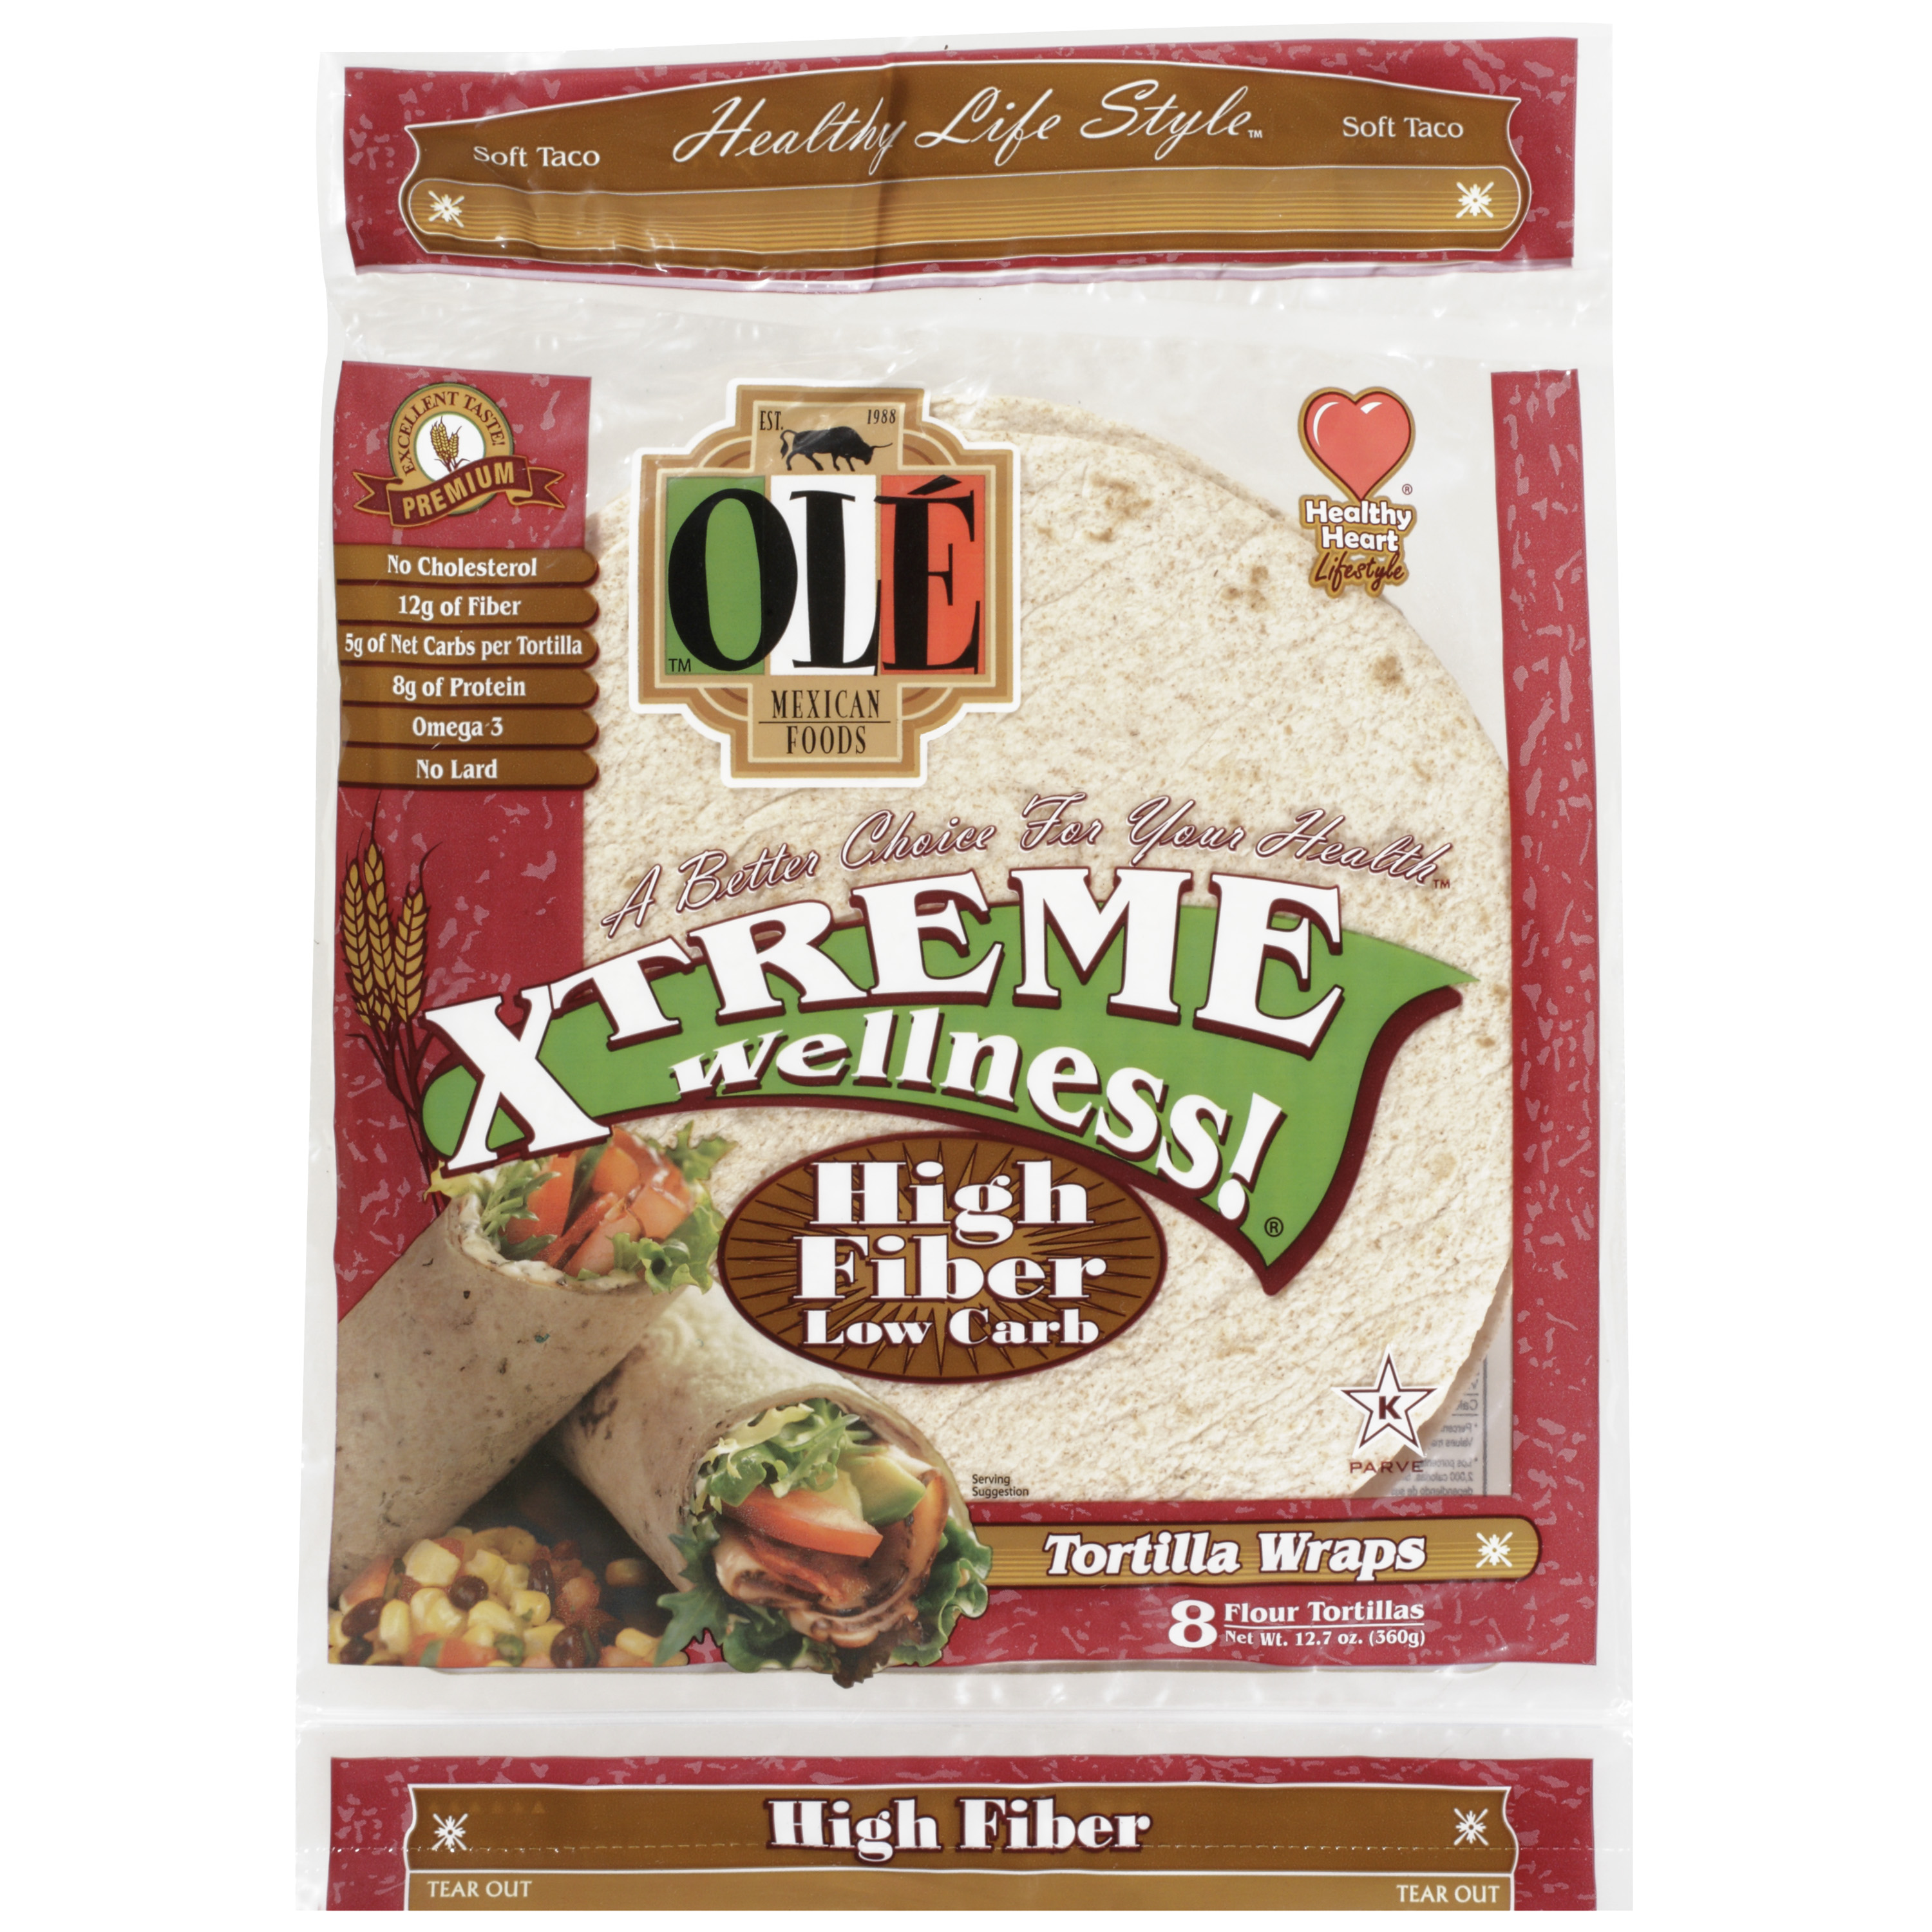 "OLE Mexican Foods Xtreme Wellness! High Fiber Low Carb 8"" Tortillas, 8 ct"